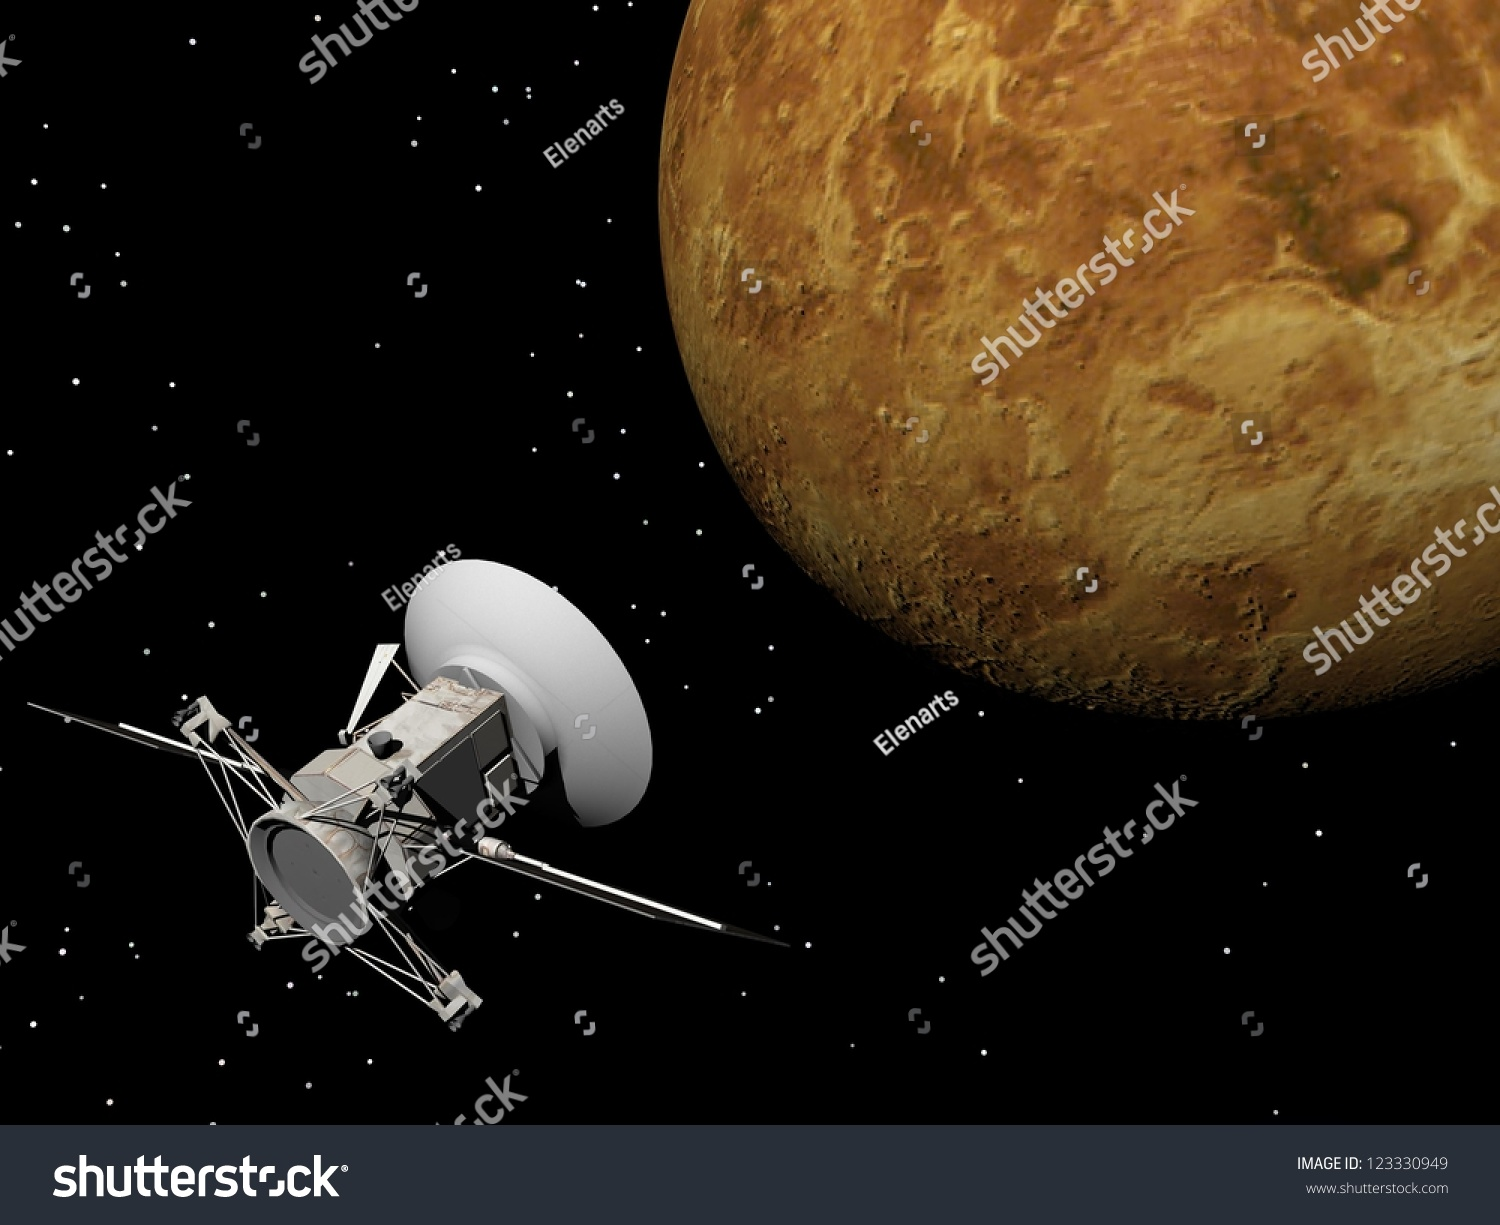 Magellan Spacecraft Near Venus Planet By Stock ...